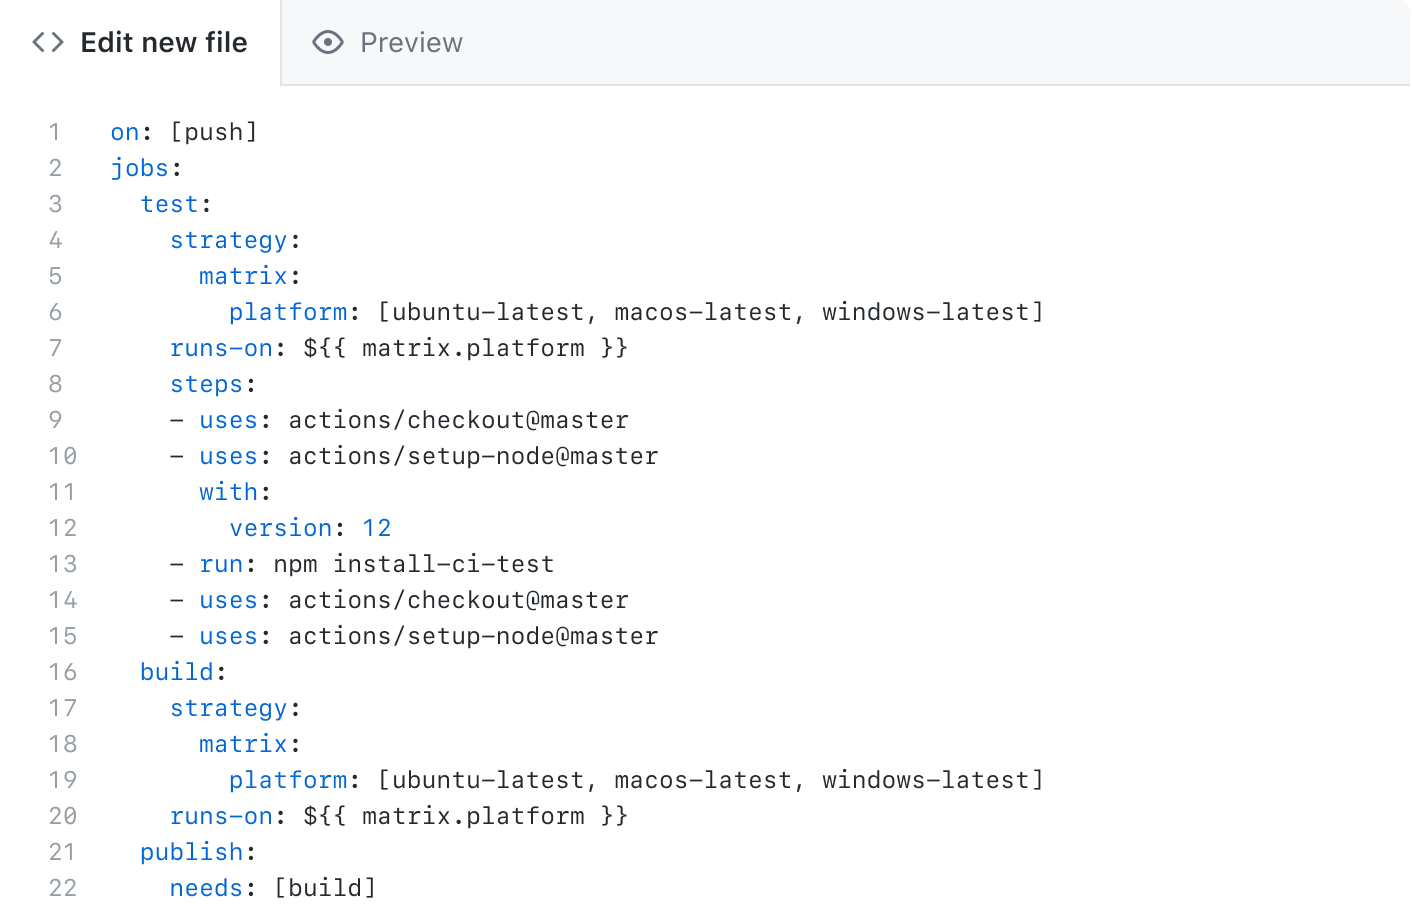 The GitHub Actions workflow editor